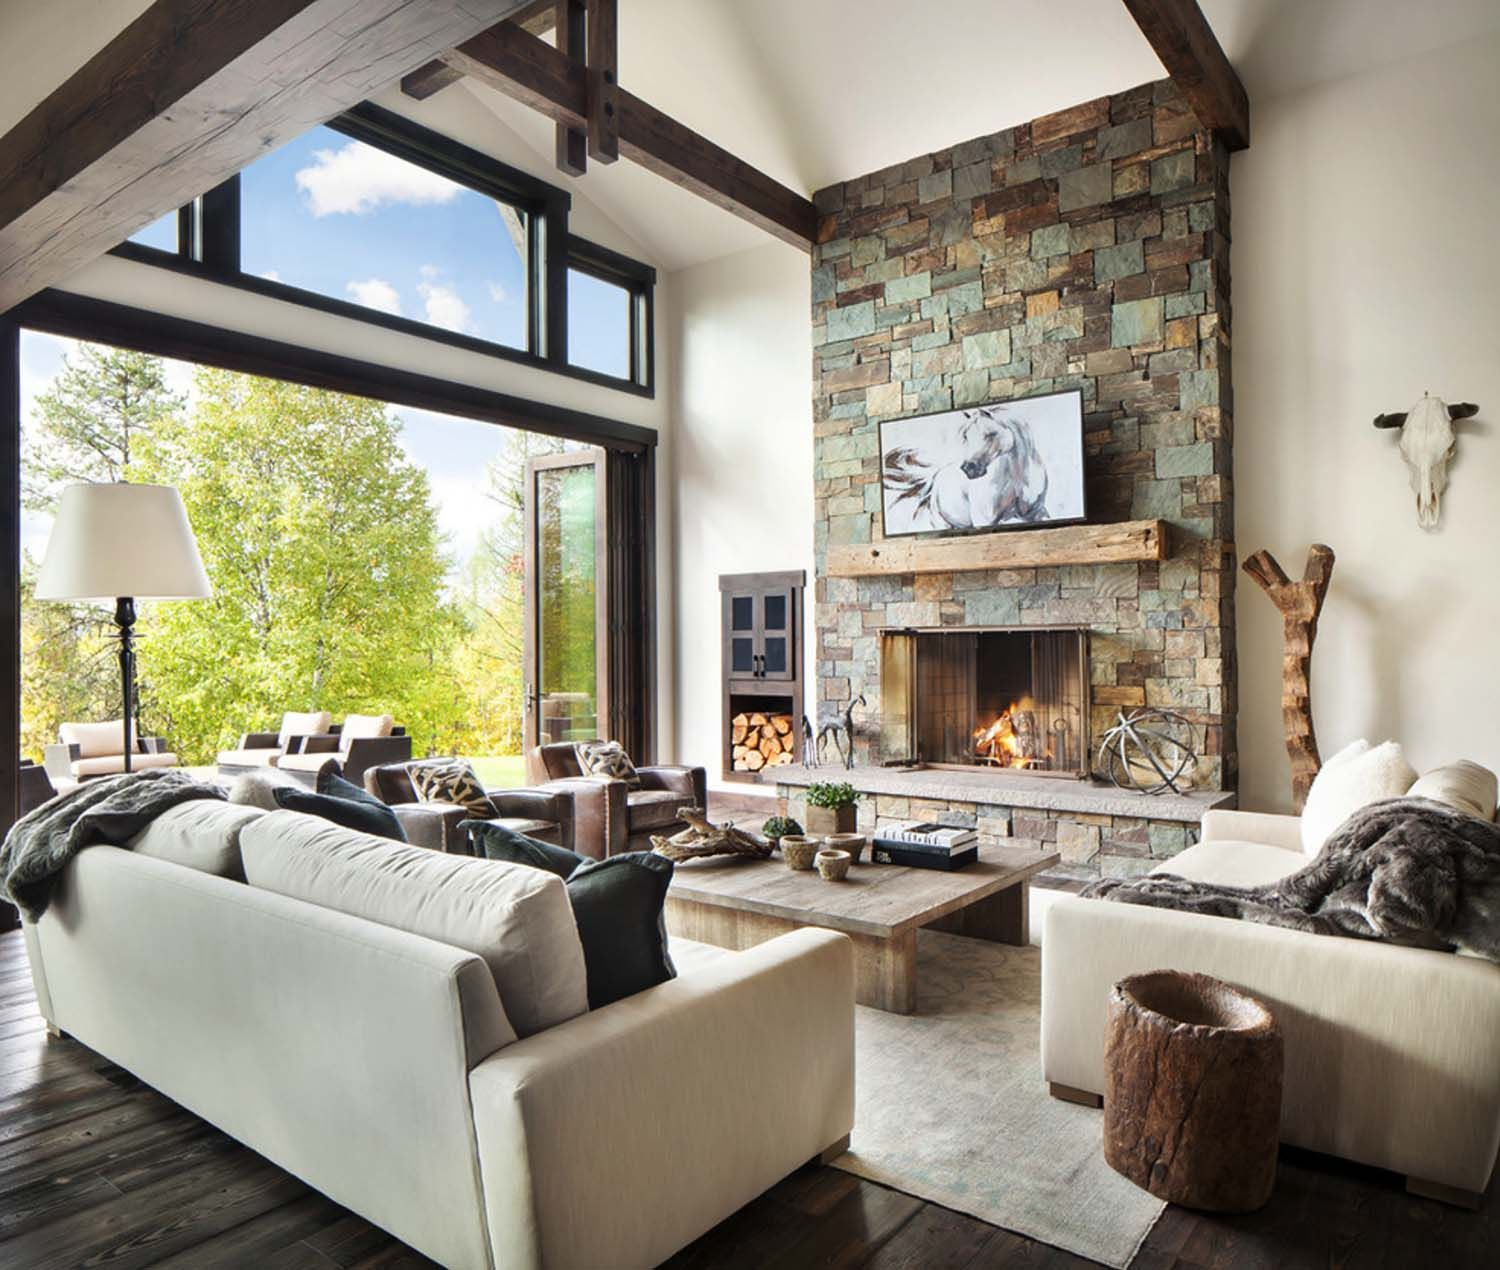 Rustic-modern Dwelling Nestled In Northern Rocky